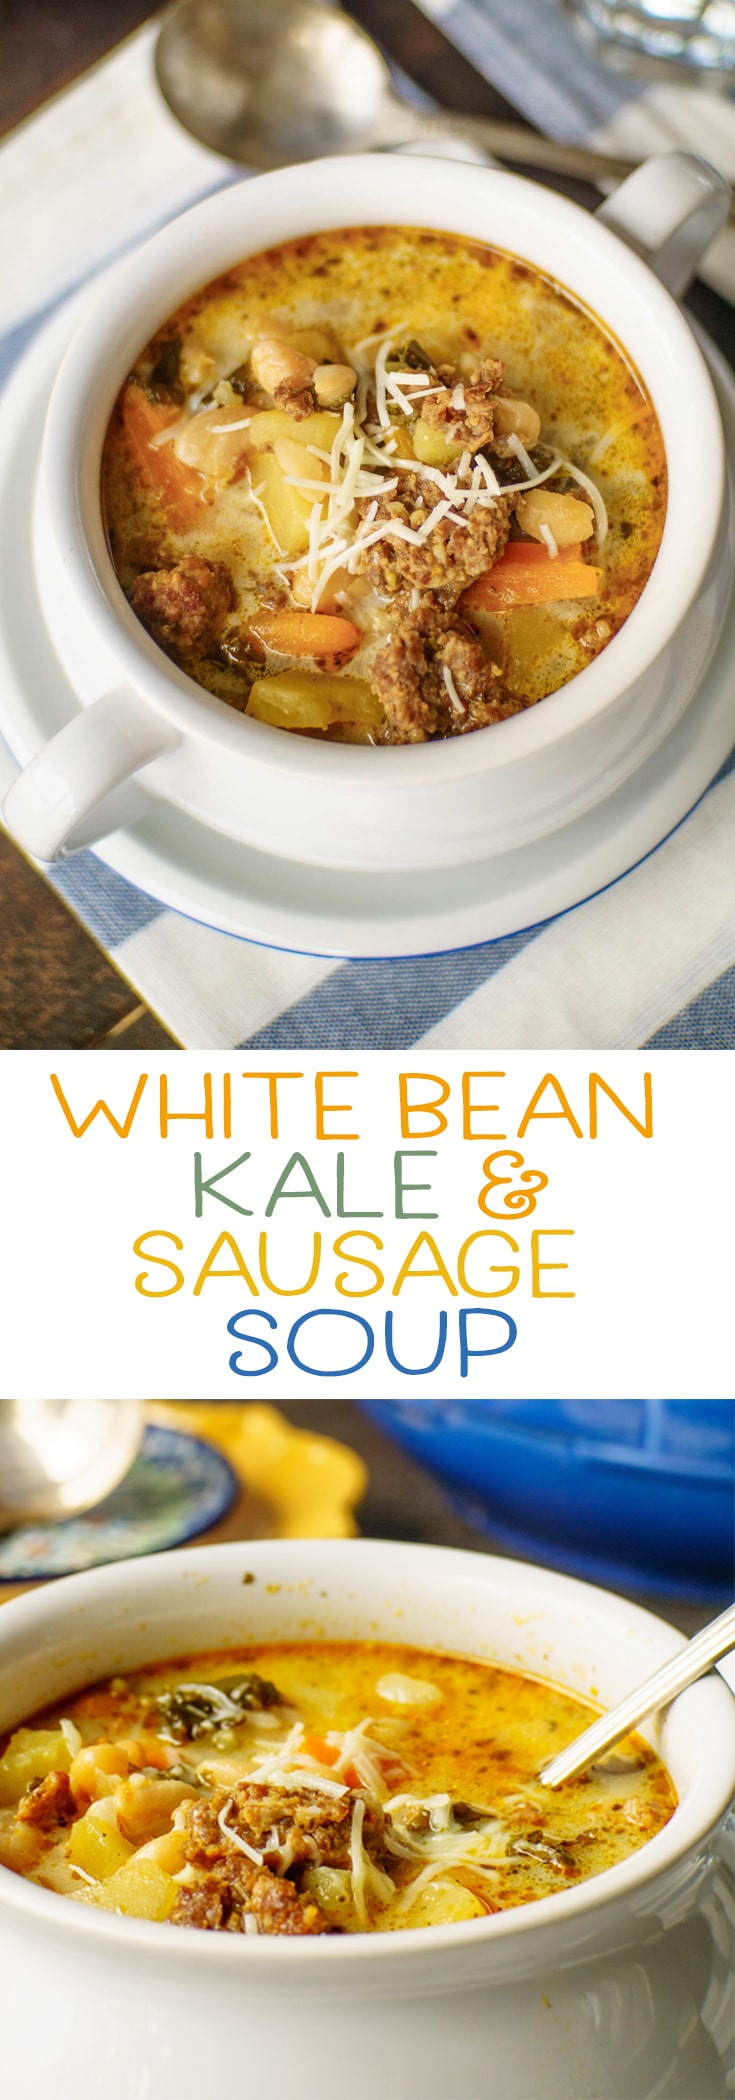 Comfort food in a bowl! This white bean kale and sausage soup is a breeze to prepare in your pressure cooker or on your stovetop!